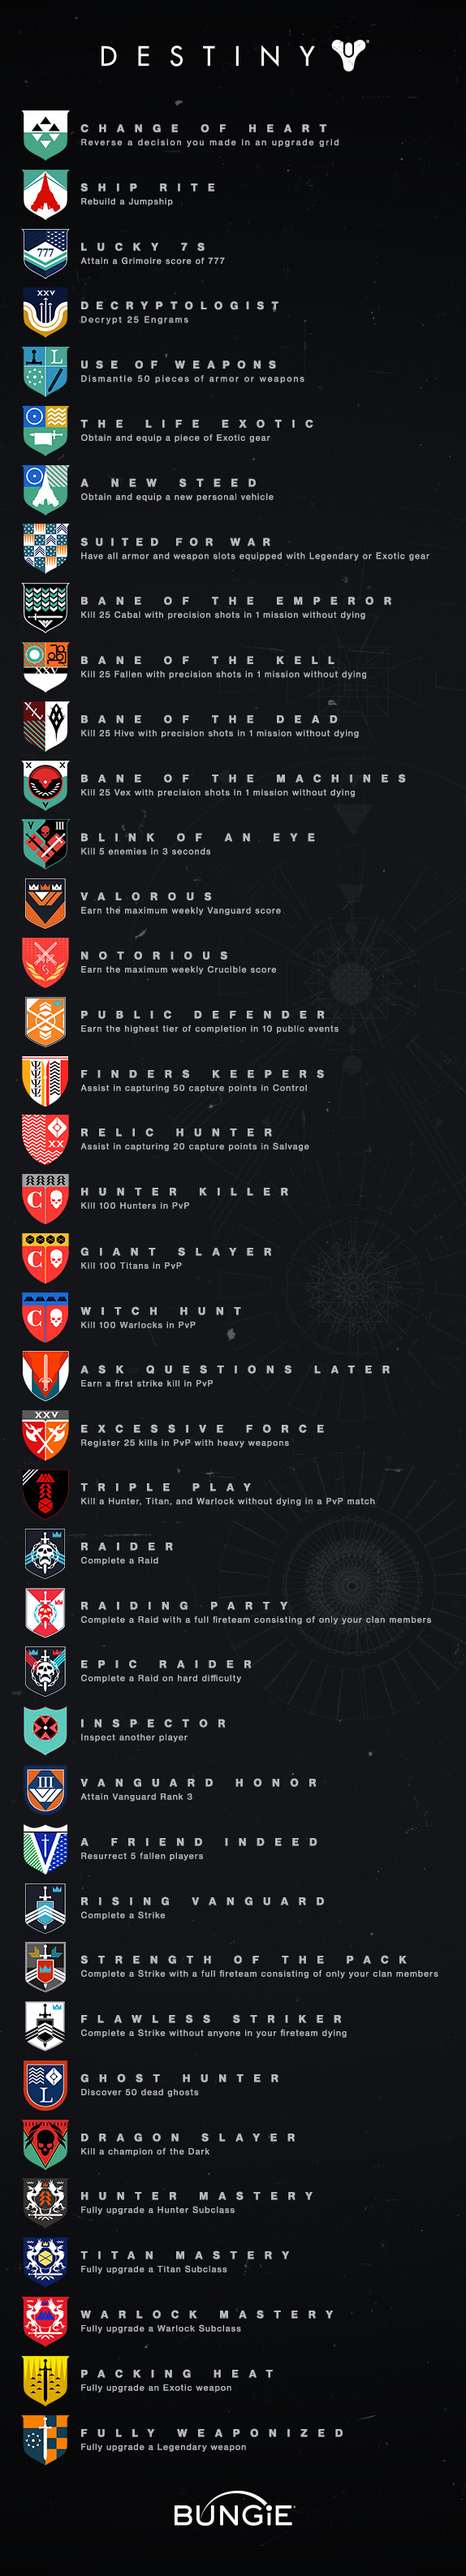 Destiny Achievements